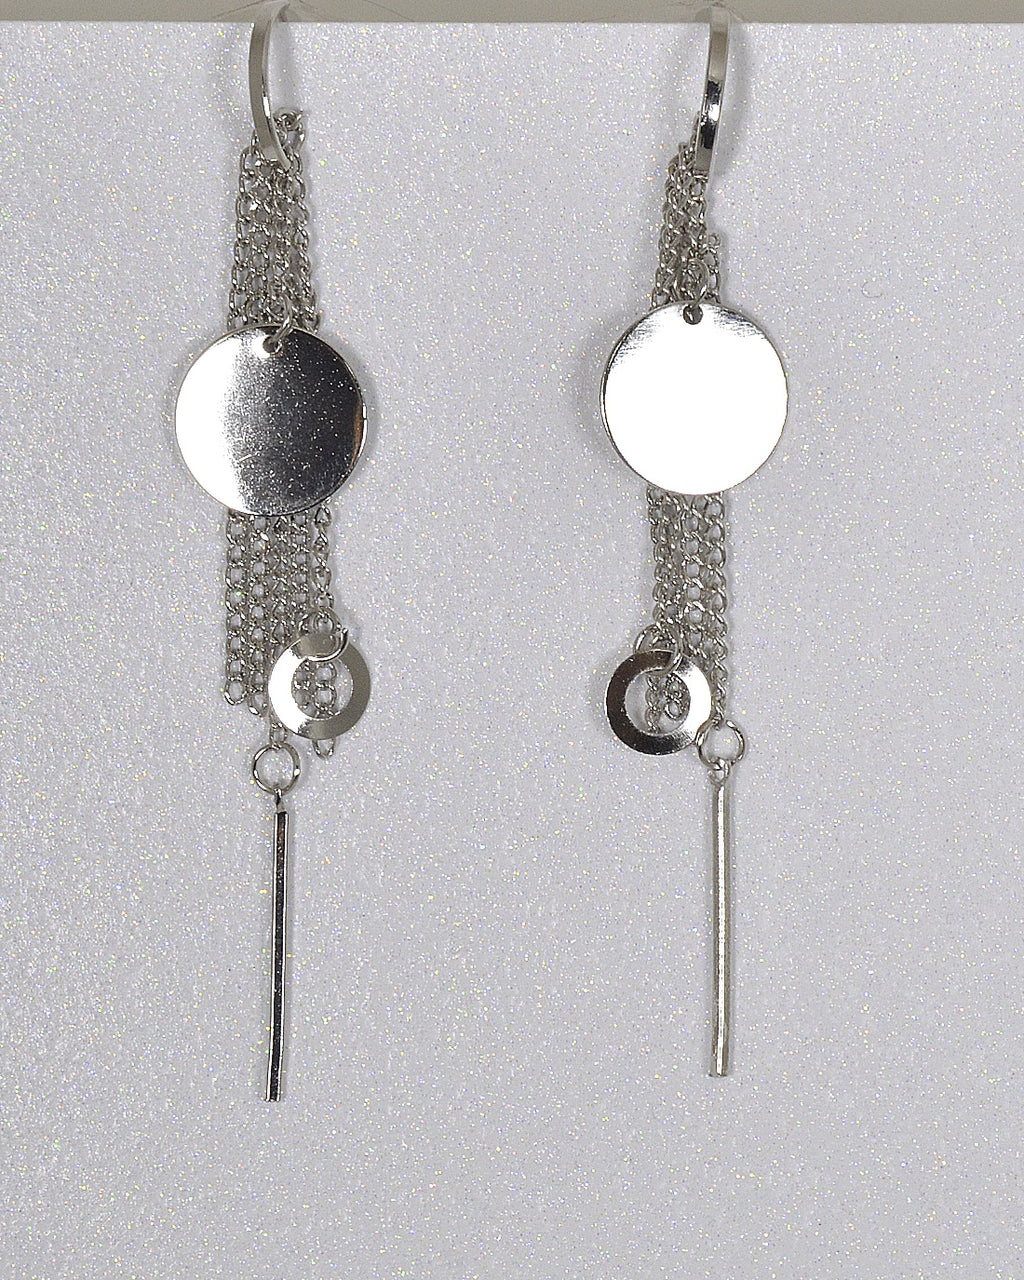 Metal Detailing Drop Earrings with Interlink Chain Accents